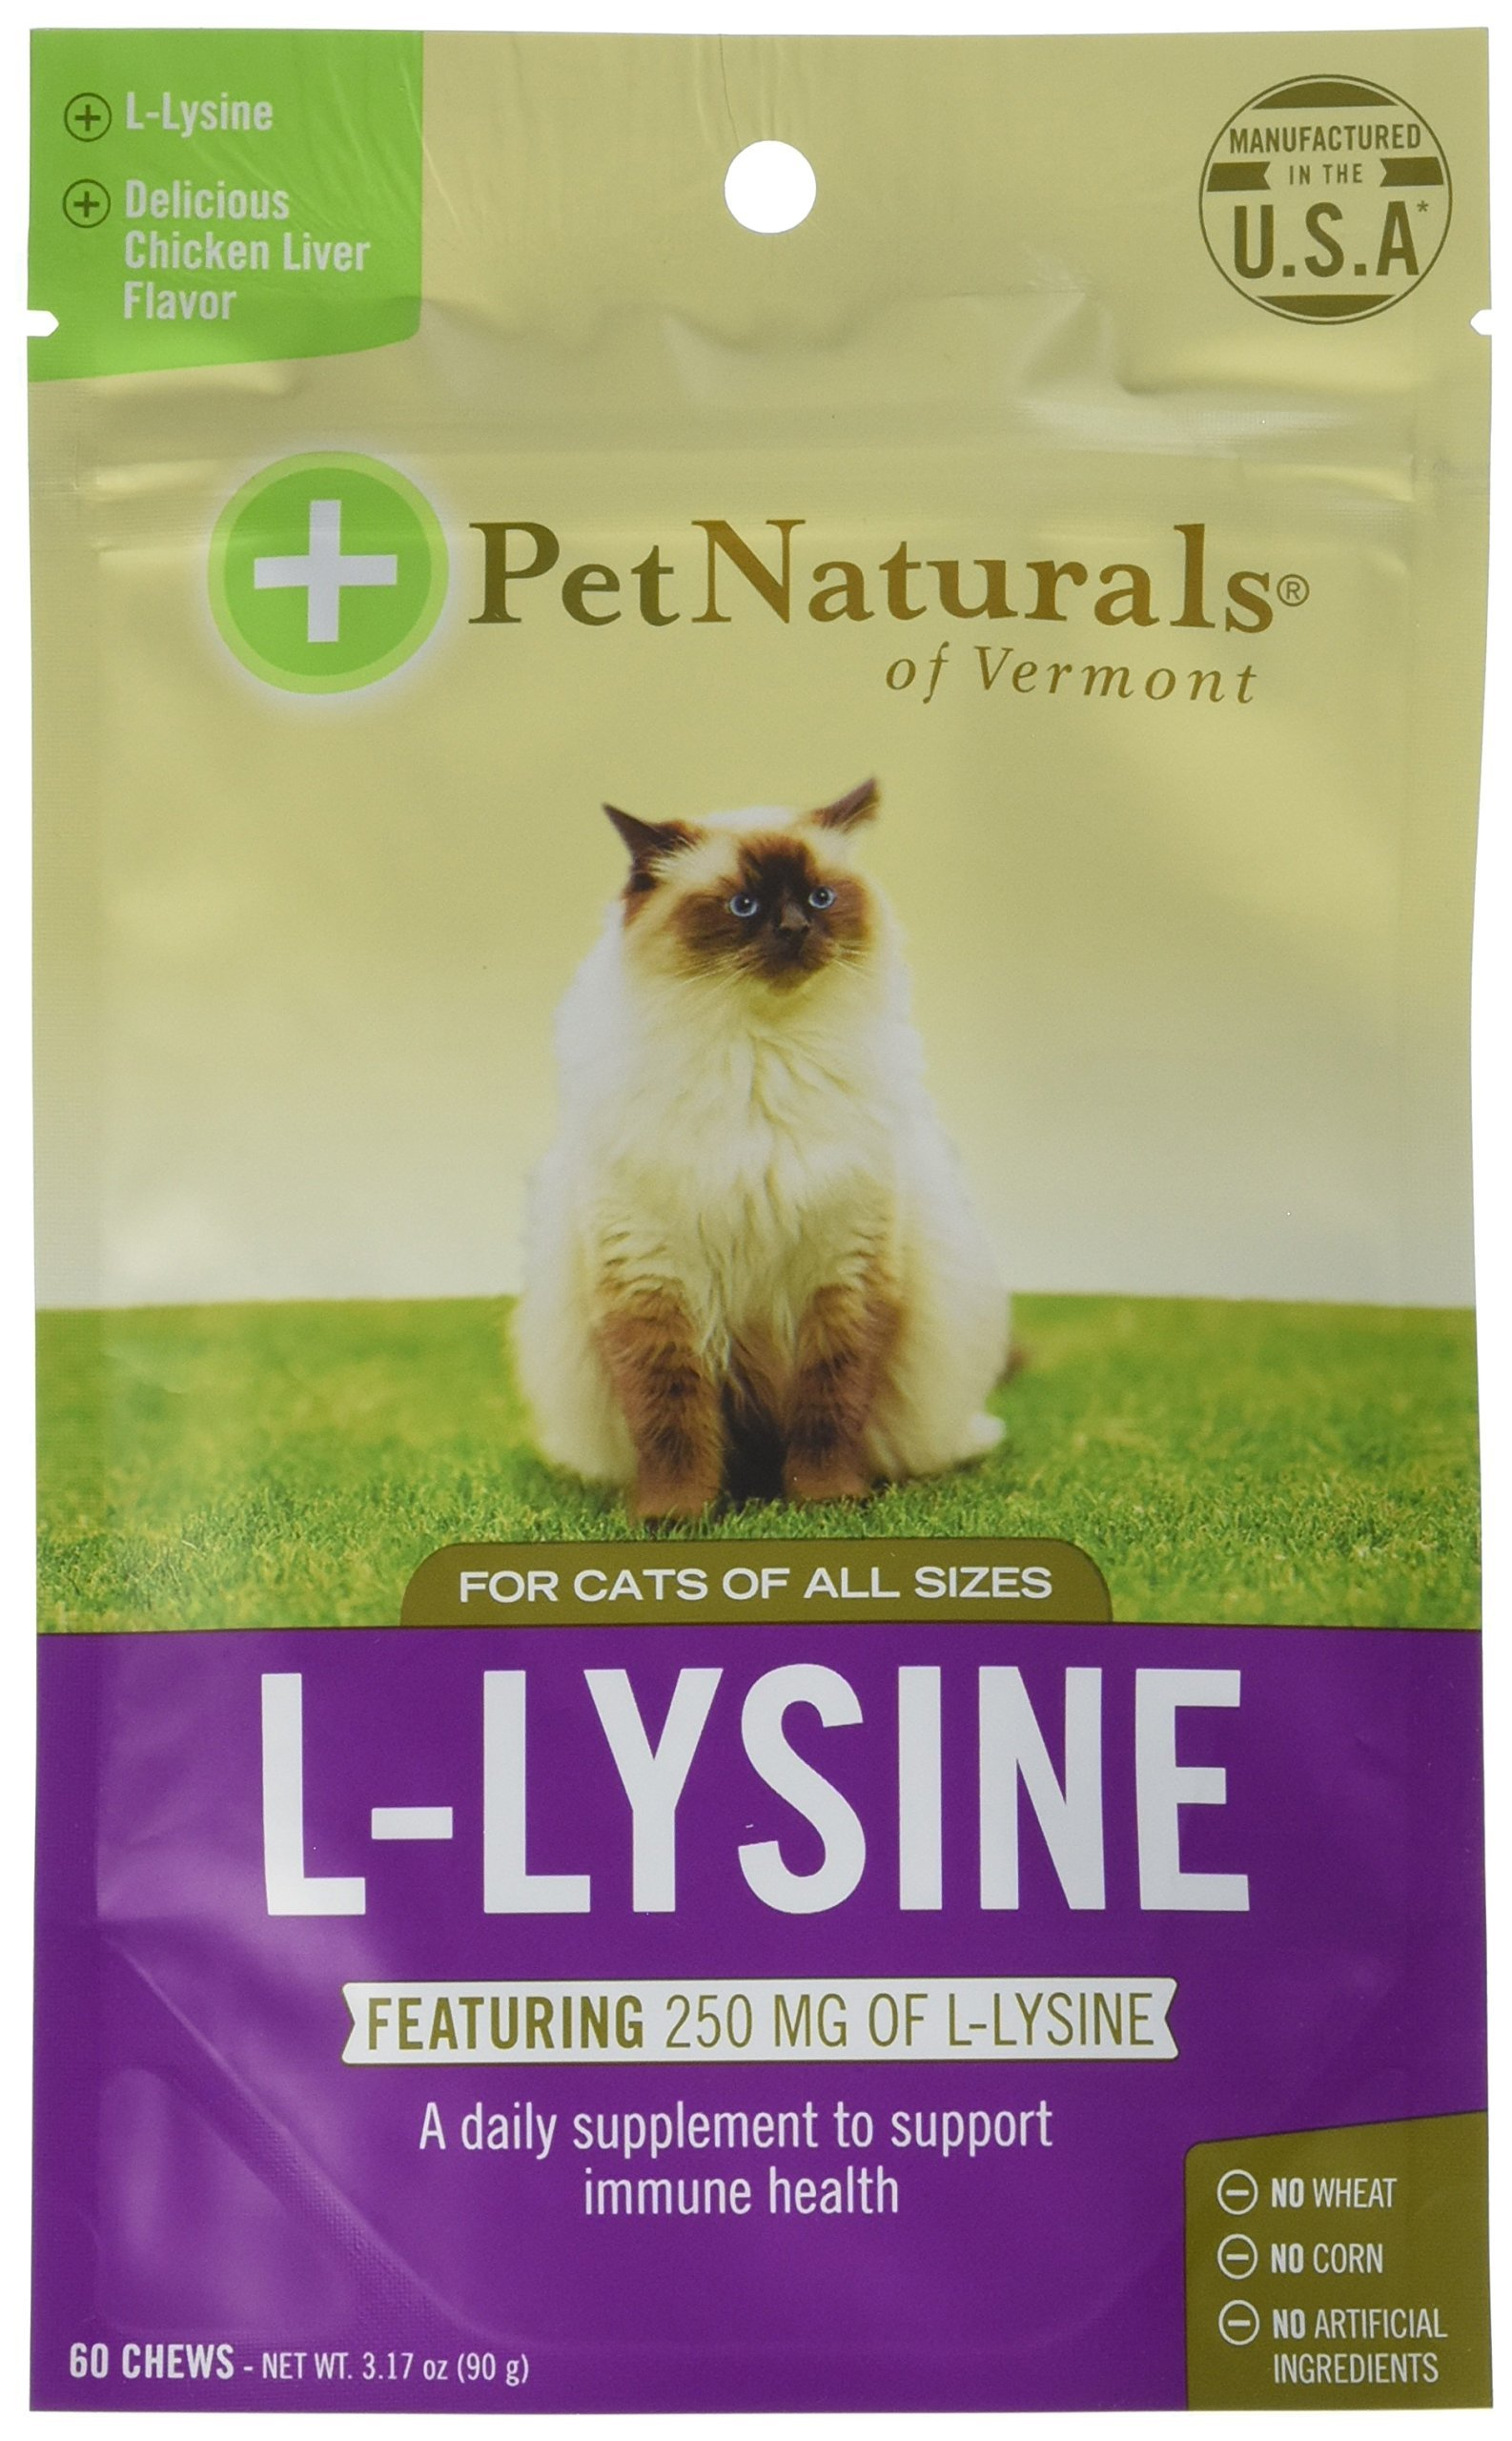 Pet Naturals of Vermont L-Lysine 60 Fun-Shaped Chews for Cats - 6 pack by Pet Naturals